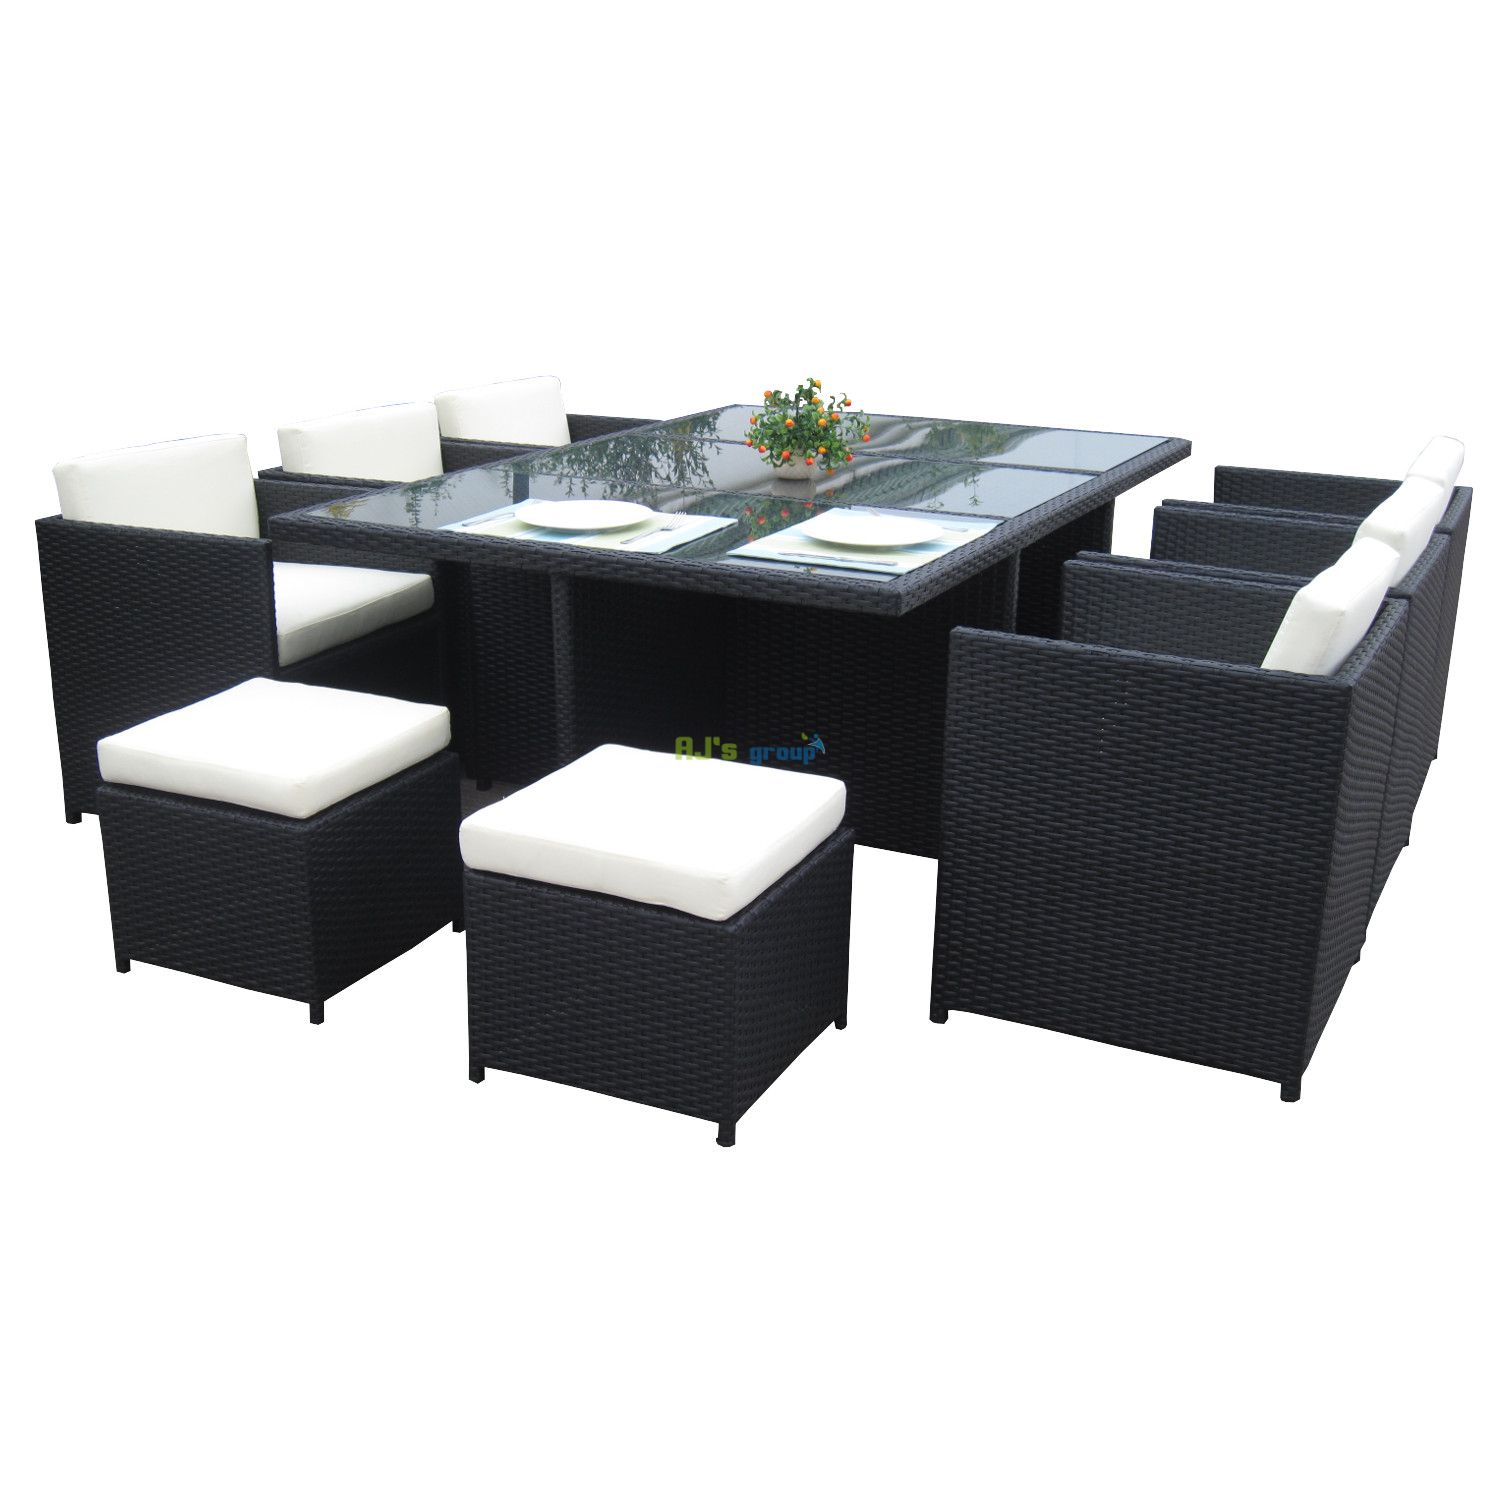 poly rattan essgruppe san diego alu gartenm bel garnitur lounge. Black Bedroom Furniture Sets. Home Design Ideas